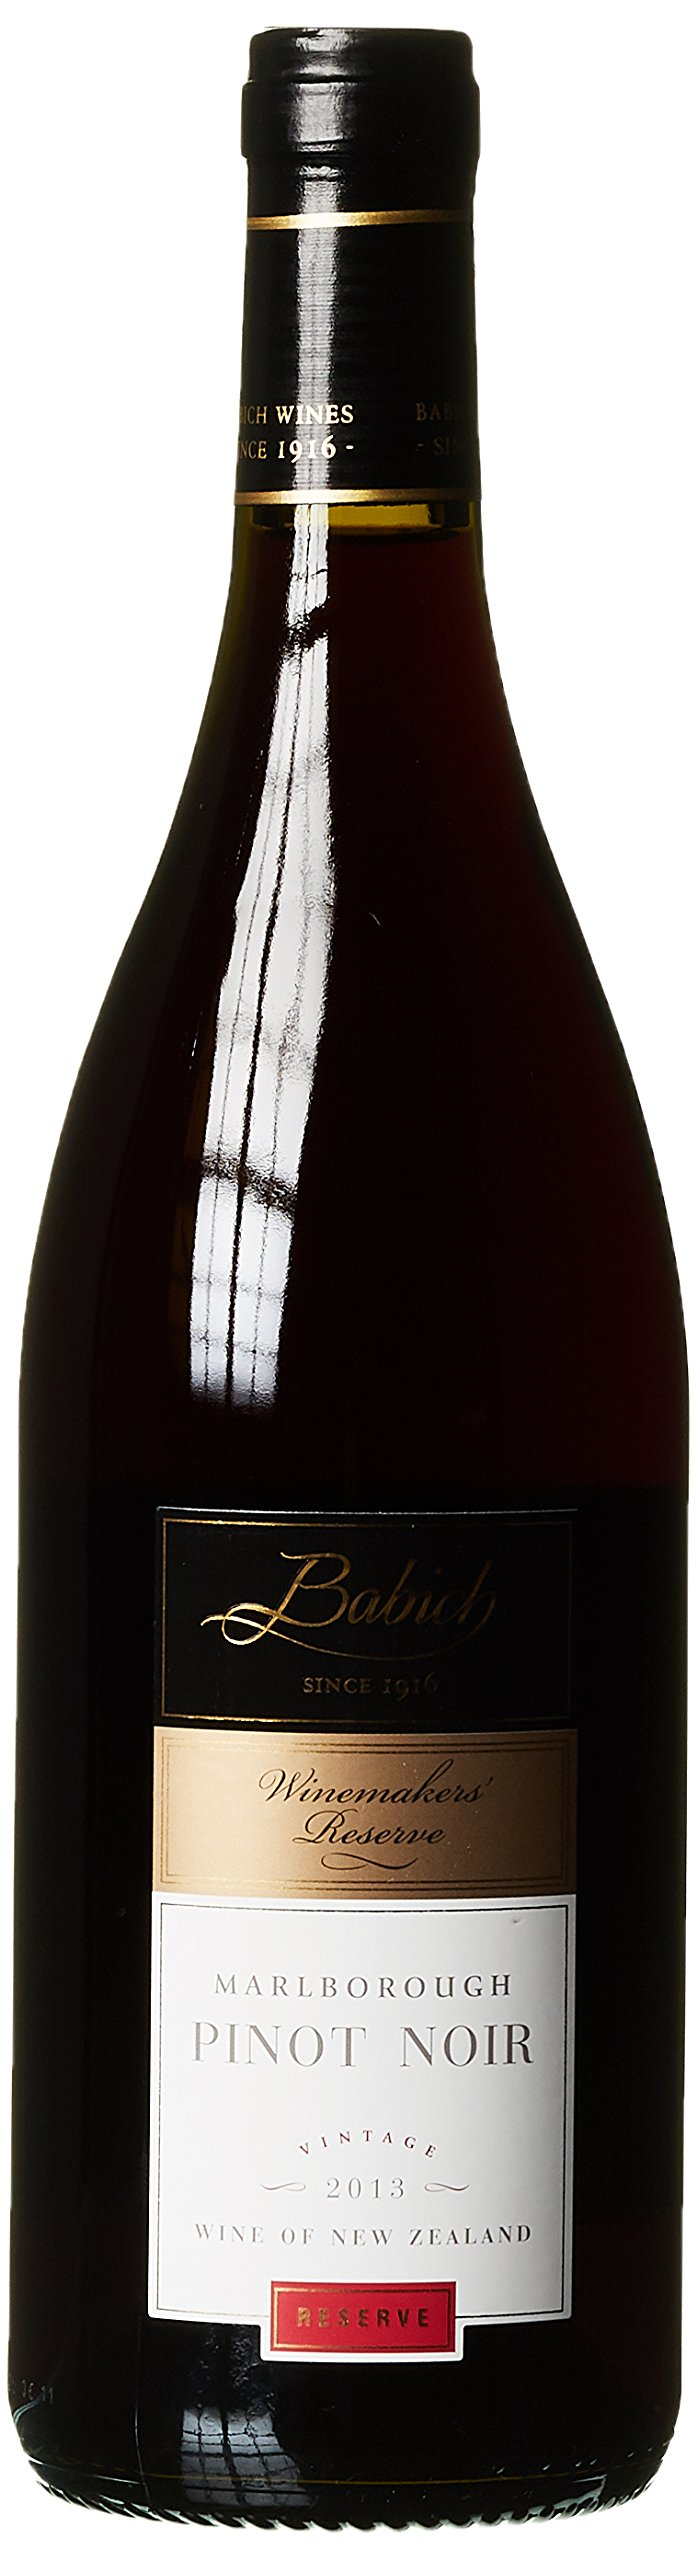 Babich-Wines-Pinot-Noir-Winemakers-Reserve-Cuve-2013-3-x-075-l